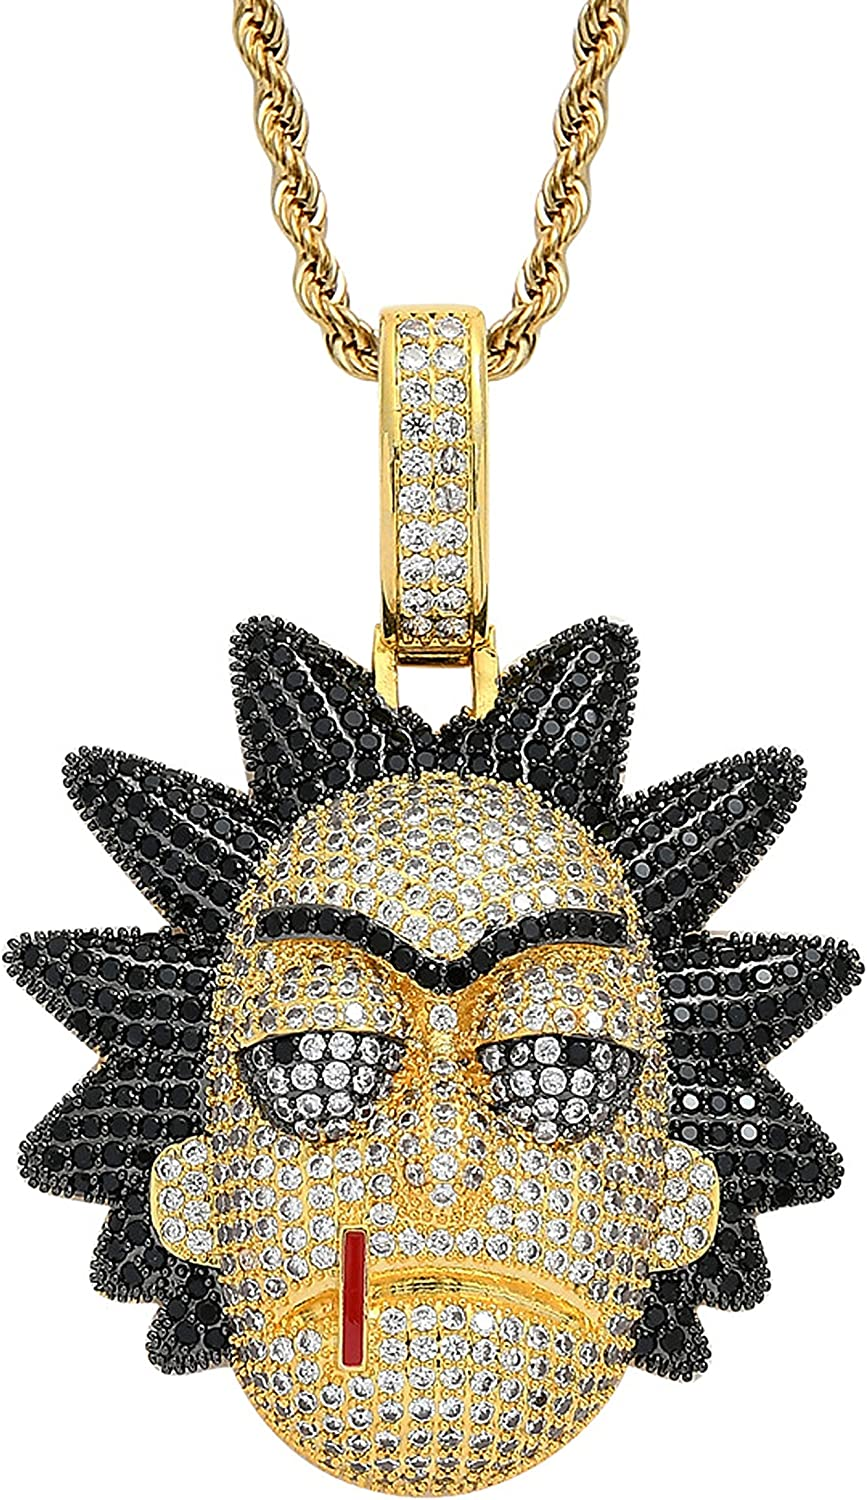 Marsheng rick and morty Rick 18k Gold Cubic Zirconia Stone Hippop Pendant Fashion Accessory Necklace